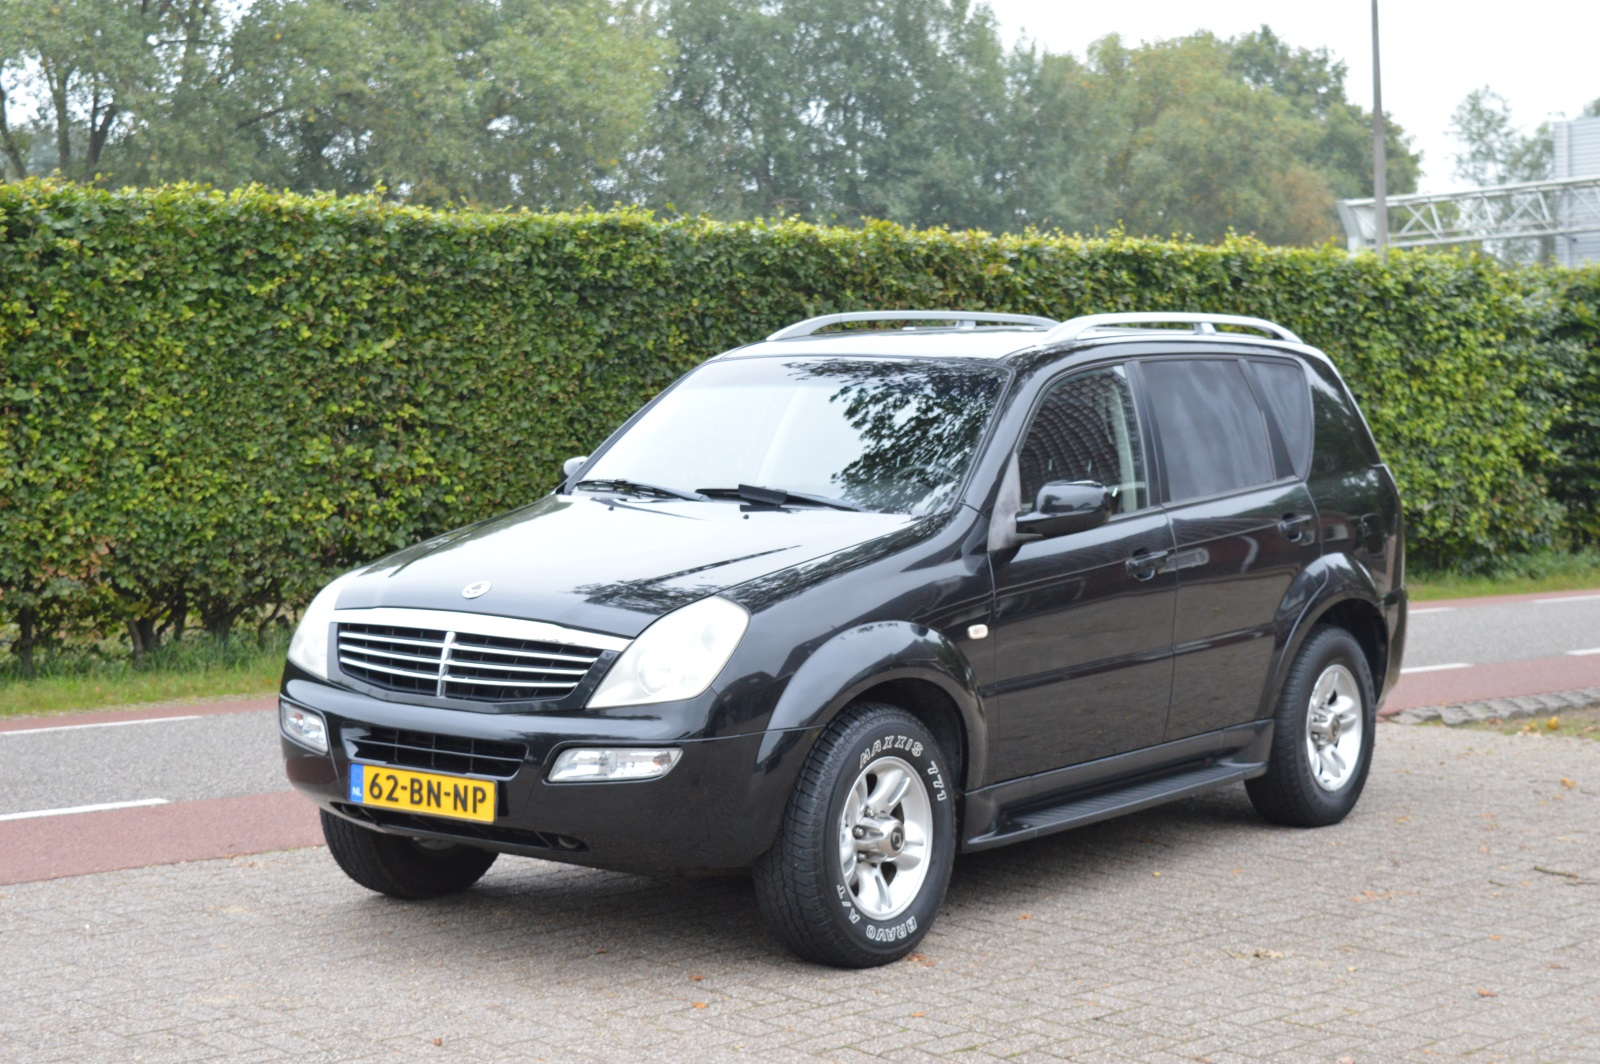 ssangyong rexton rx 290 autobedrijf slager. Black Bedroom Furniture Sets. Home Design Ideas